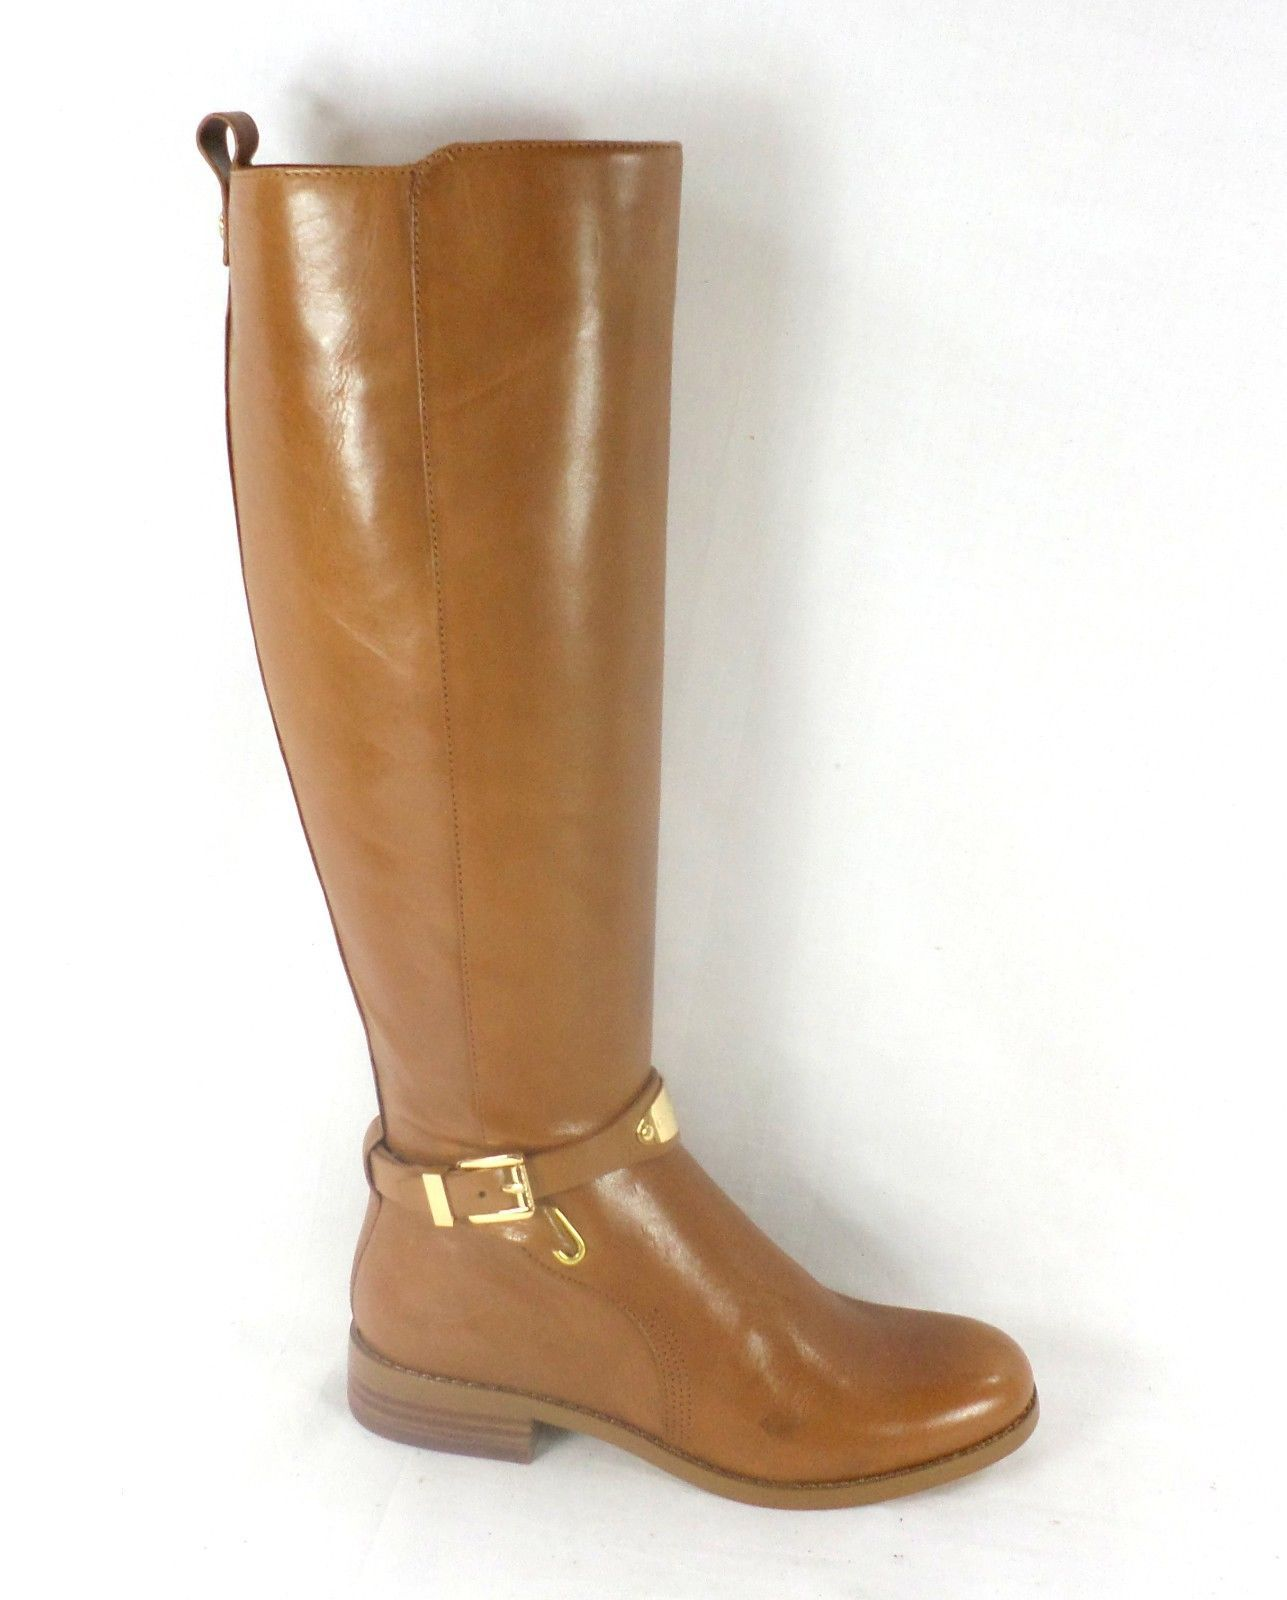 9285fa74d920 Michael Kors Arley Luggage Brown Leather Riding Boots Womens Size 5 ...